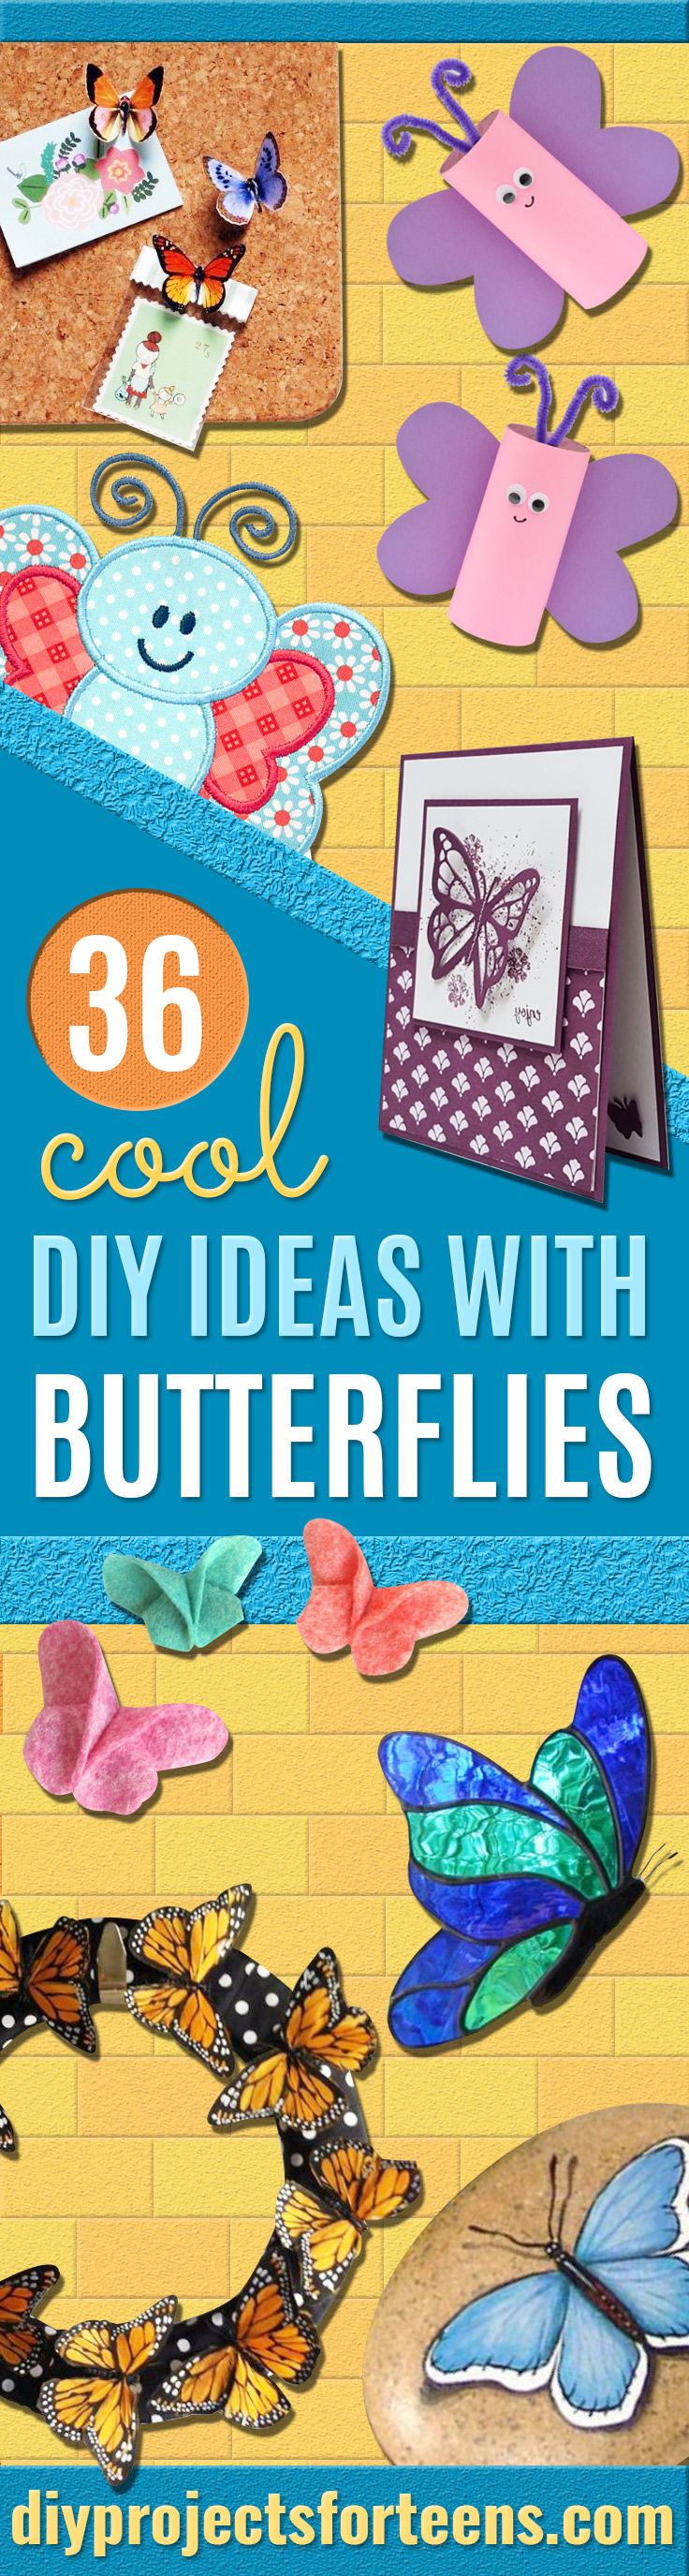 DIY Ideas With Butterflies - Cute and Easy DIY Projects for Butterfly Lovers - Wall and Home Decor Projects, Things To Make and Sell on Etsy - Quick Gifts to Make for Friends and Family - Homemade No Sew Projects- Fun Jewelry, Cool Clothes and Accessories #diyideas #butterflies